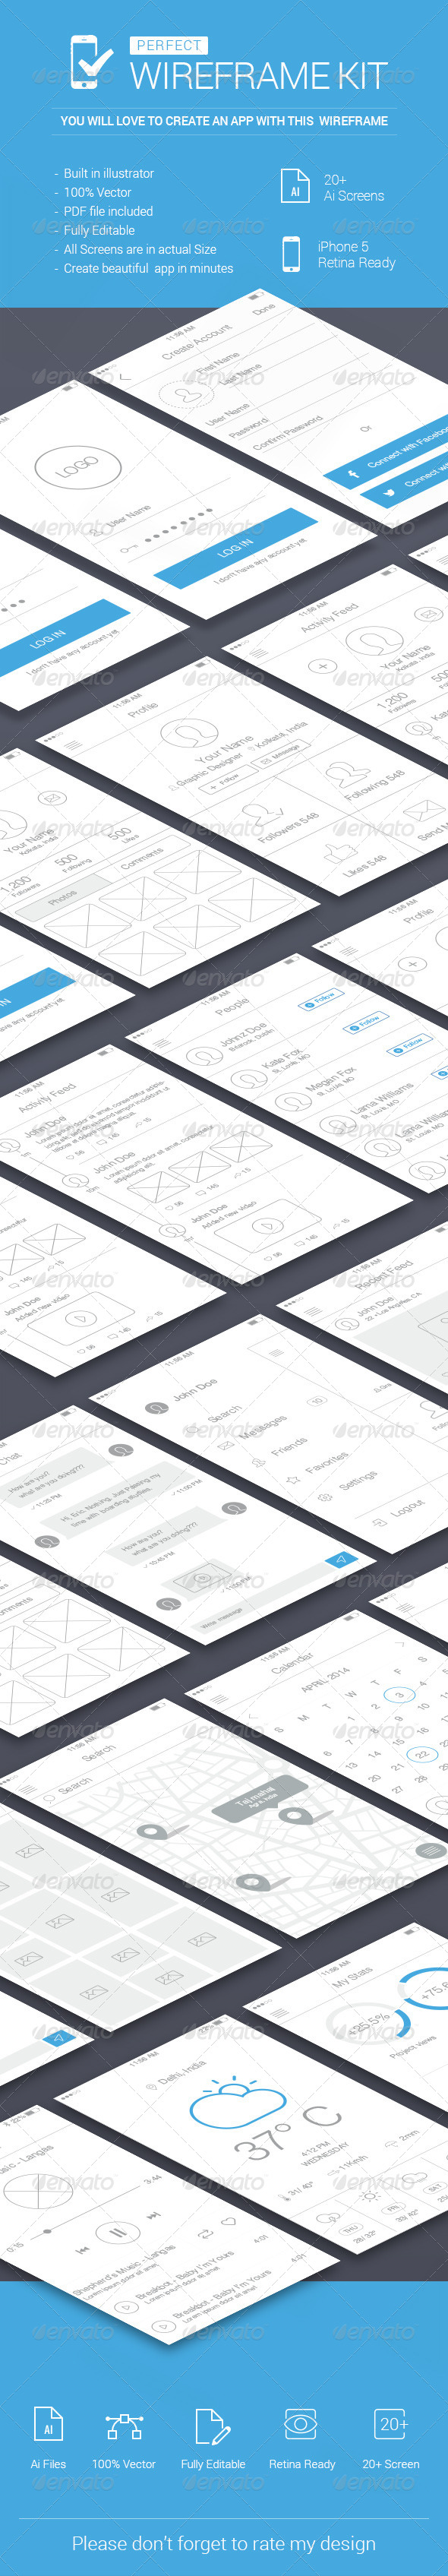 iOS Wireframe Kit - User Interfaces Web Elements